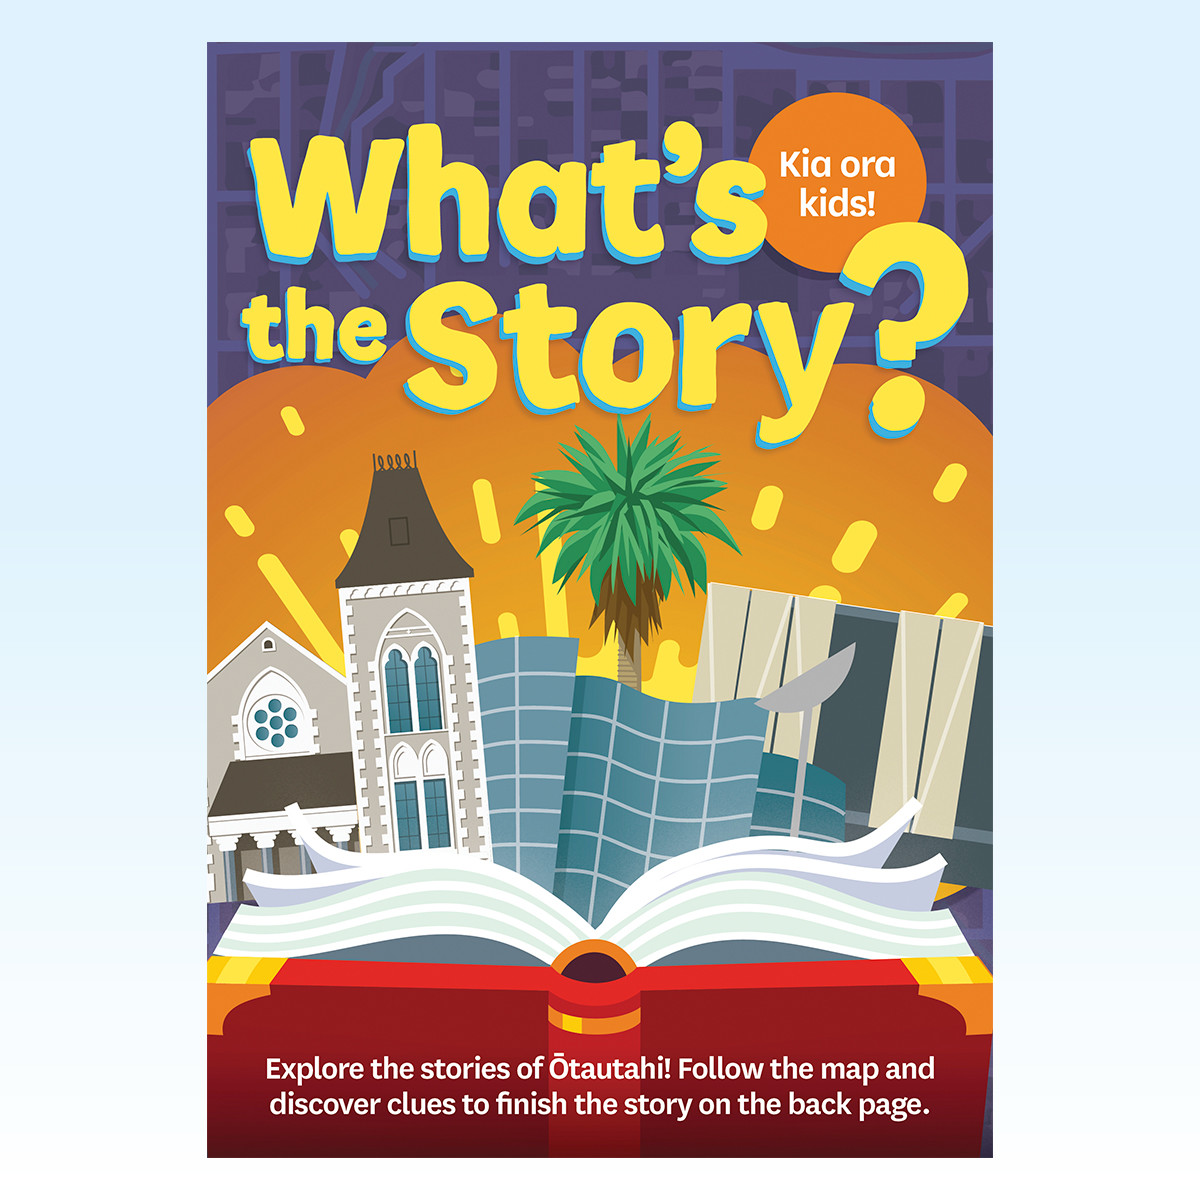 Kids Trail: What's the Story?